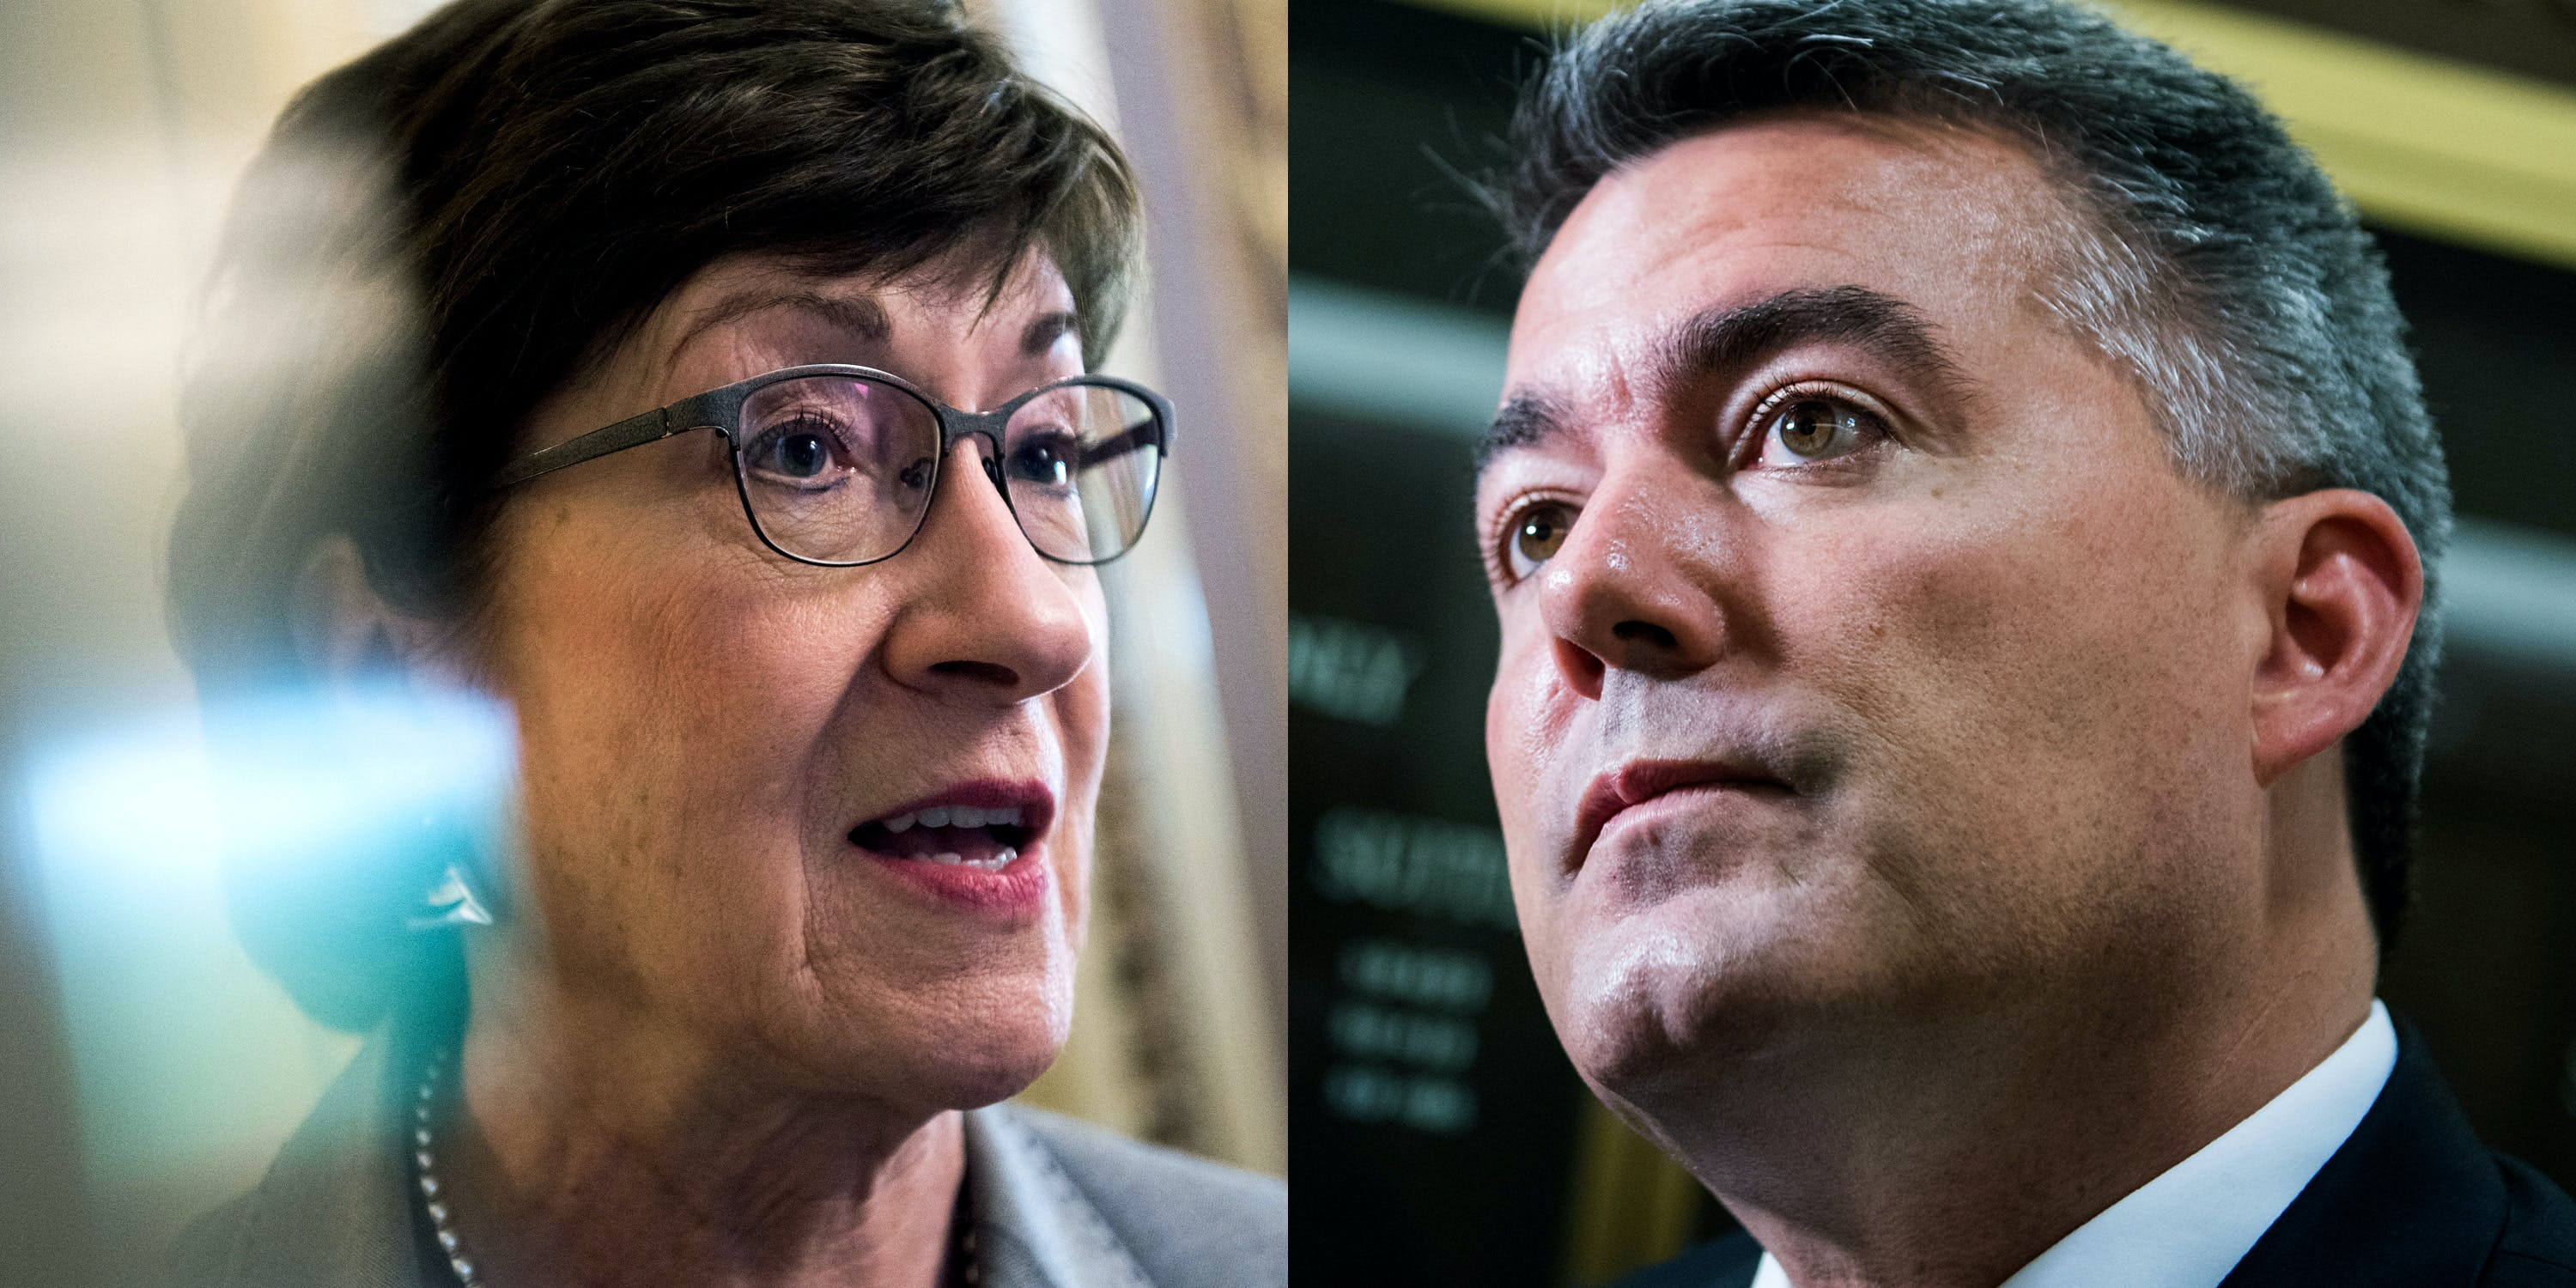 Do Susan Collins and Cory Gardner Really Want to Make Their Re-elections About Keeping Kids in Cages?